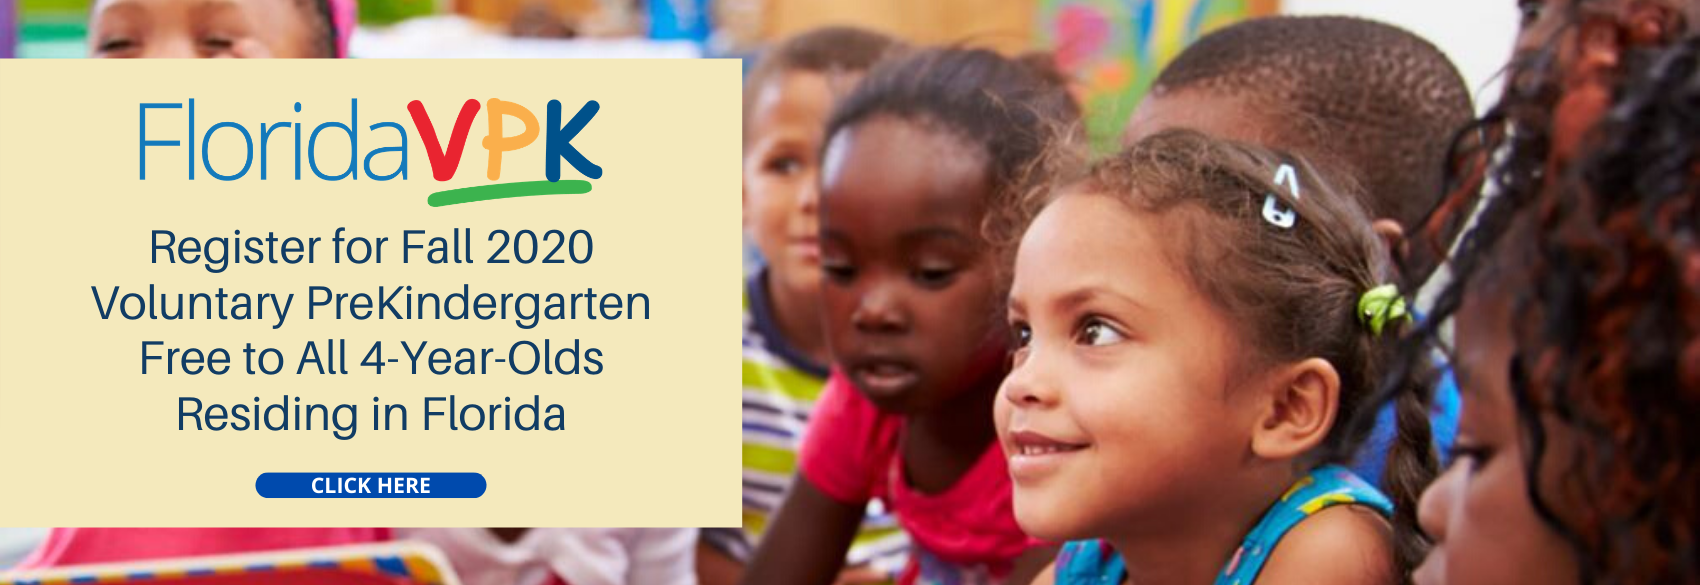 Register for Fall 2020 VPK free to all 4-year-olds residing in Florida.